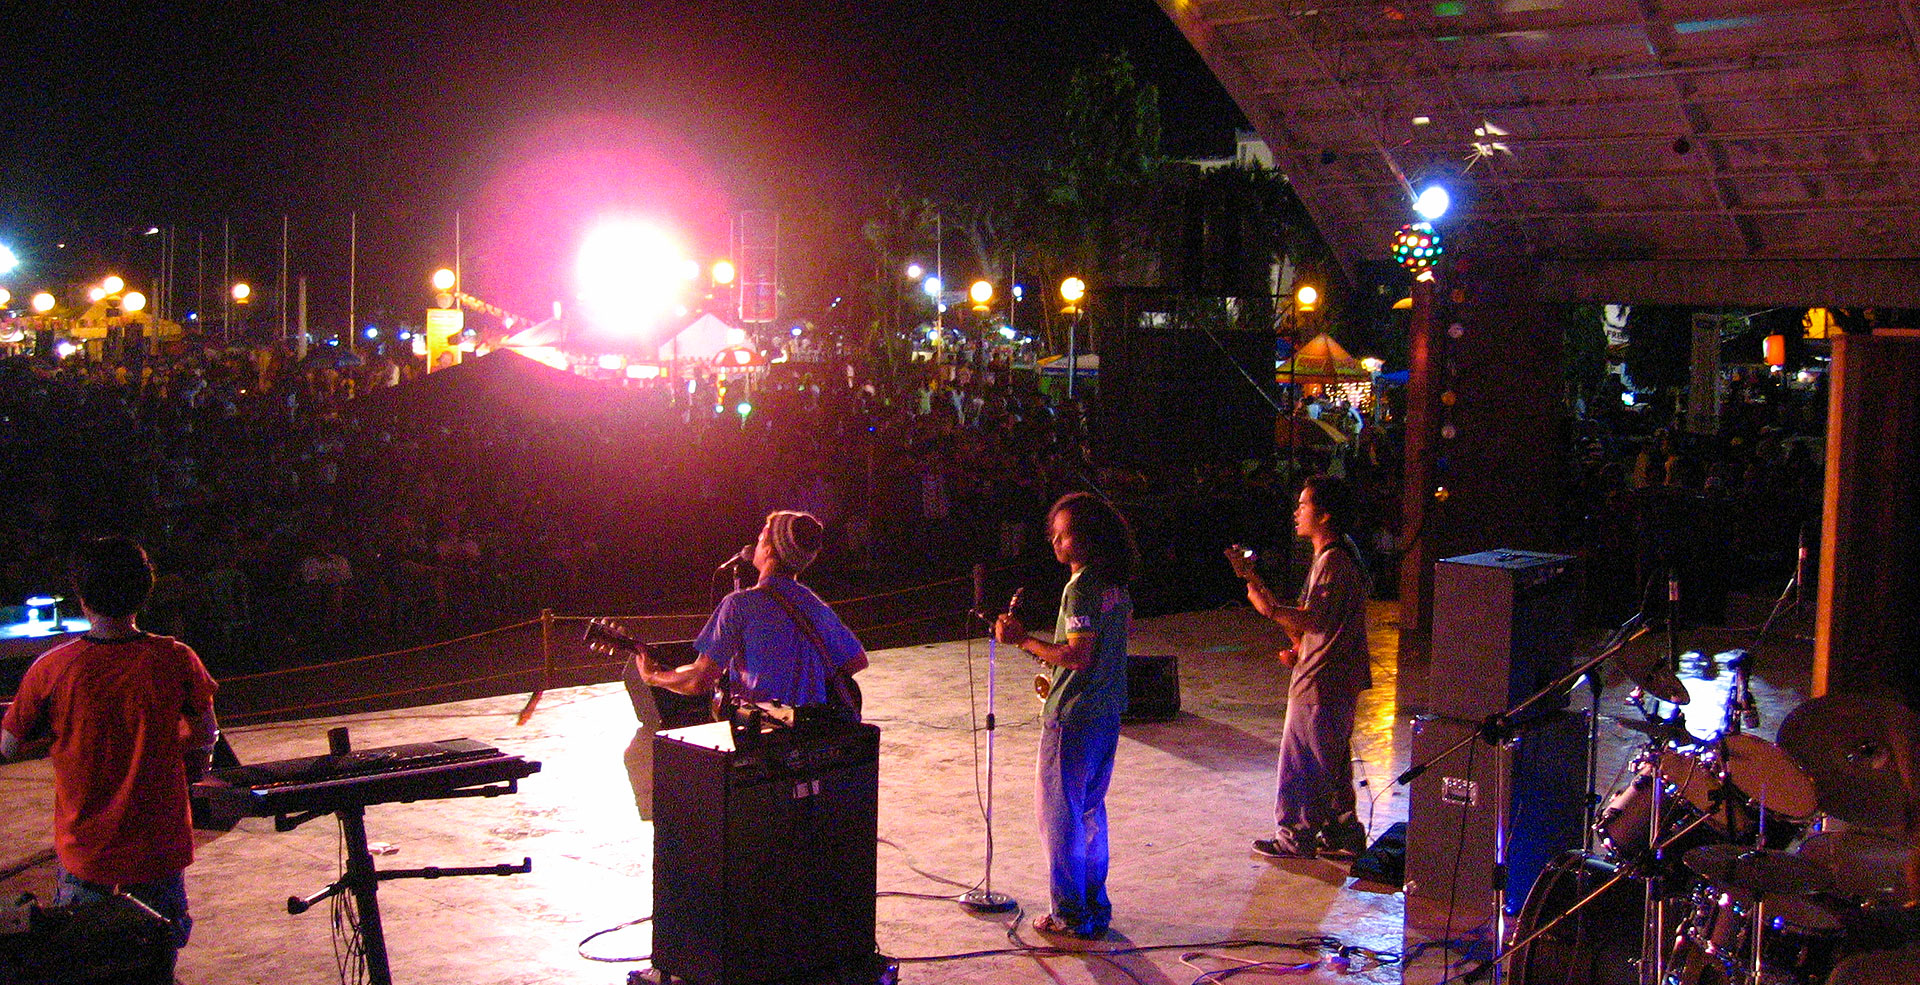 Live performance at the Dumaguete festival grounds